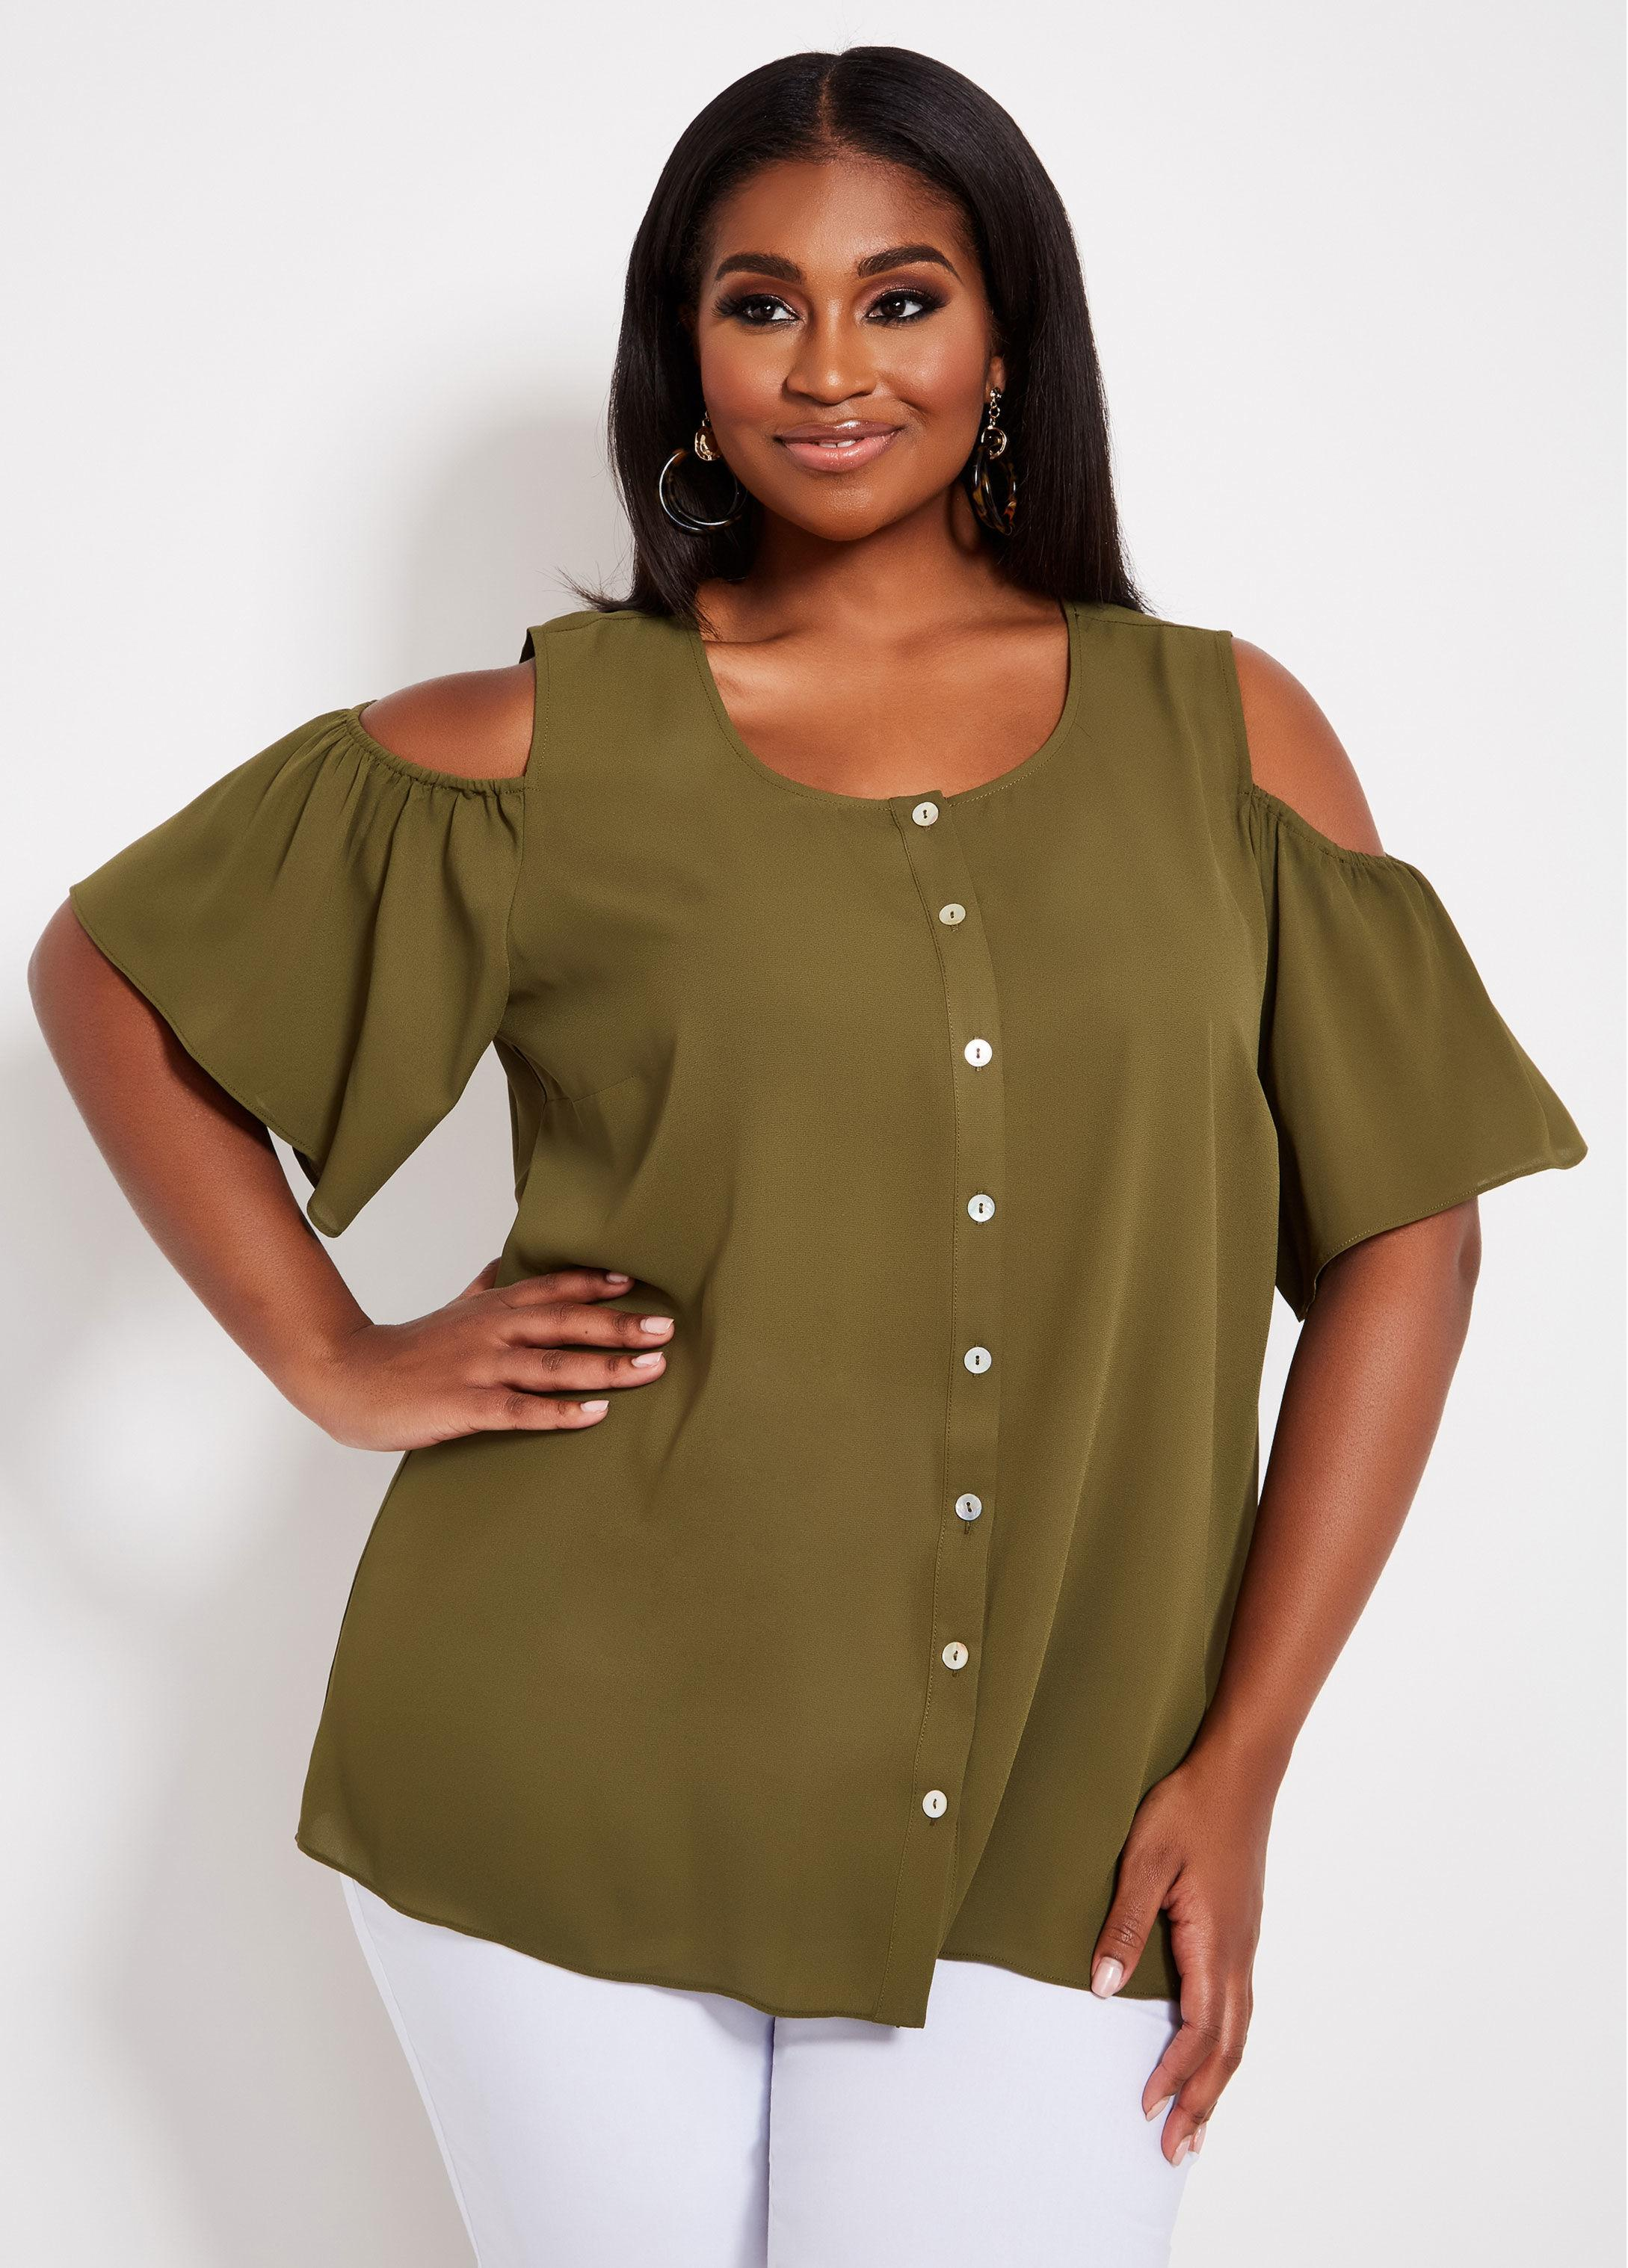 227cb88aae3 Lyst - Ashley Stewart Plus Size Solid Cold Shoulder Top in Green